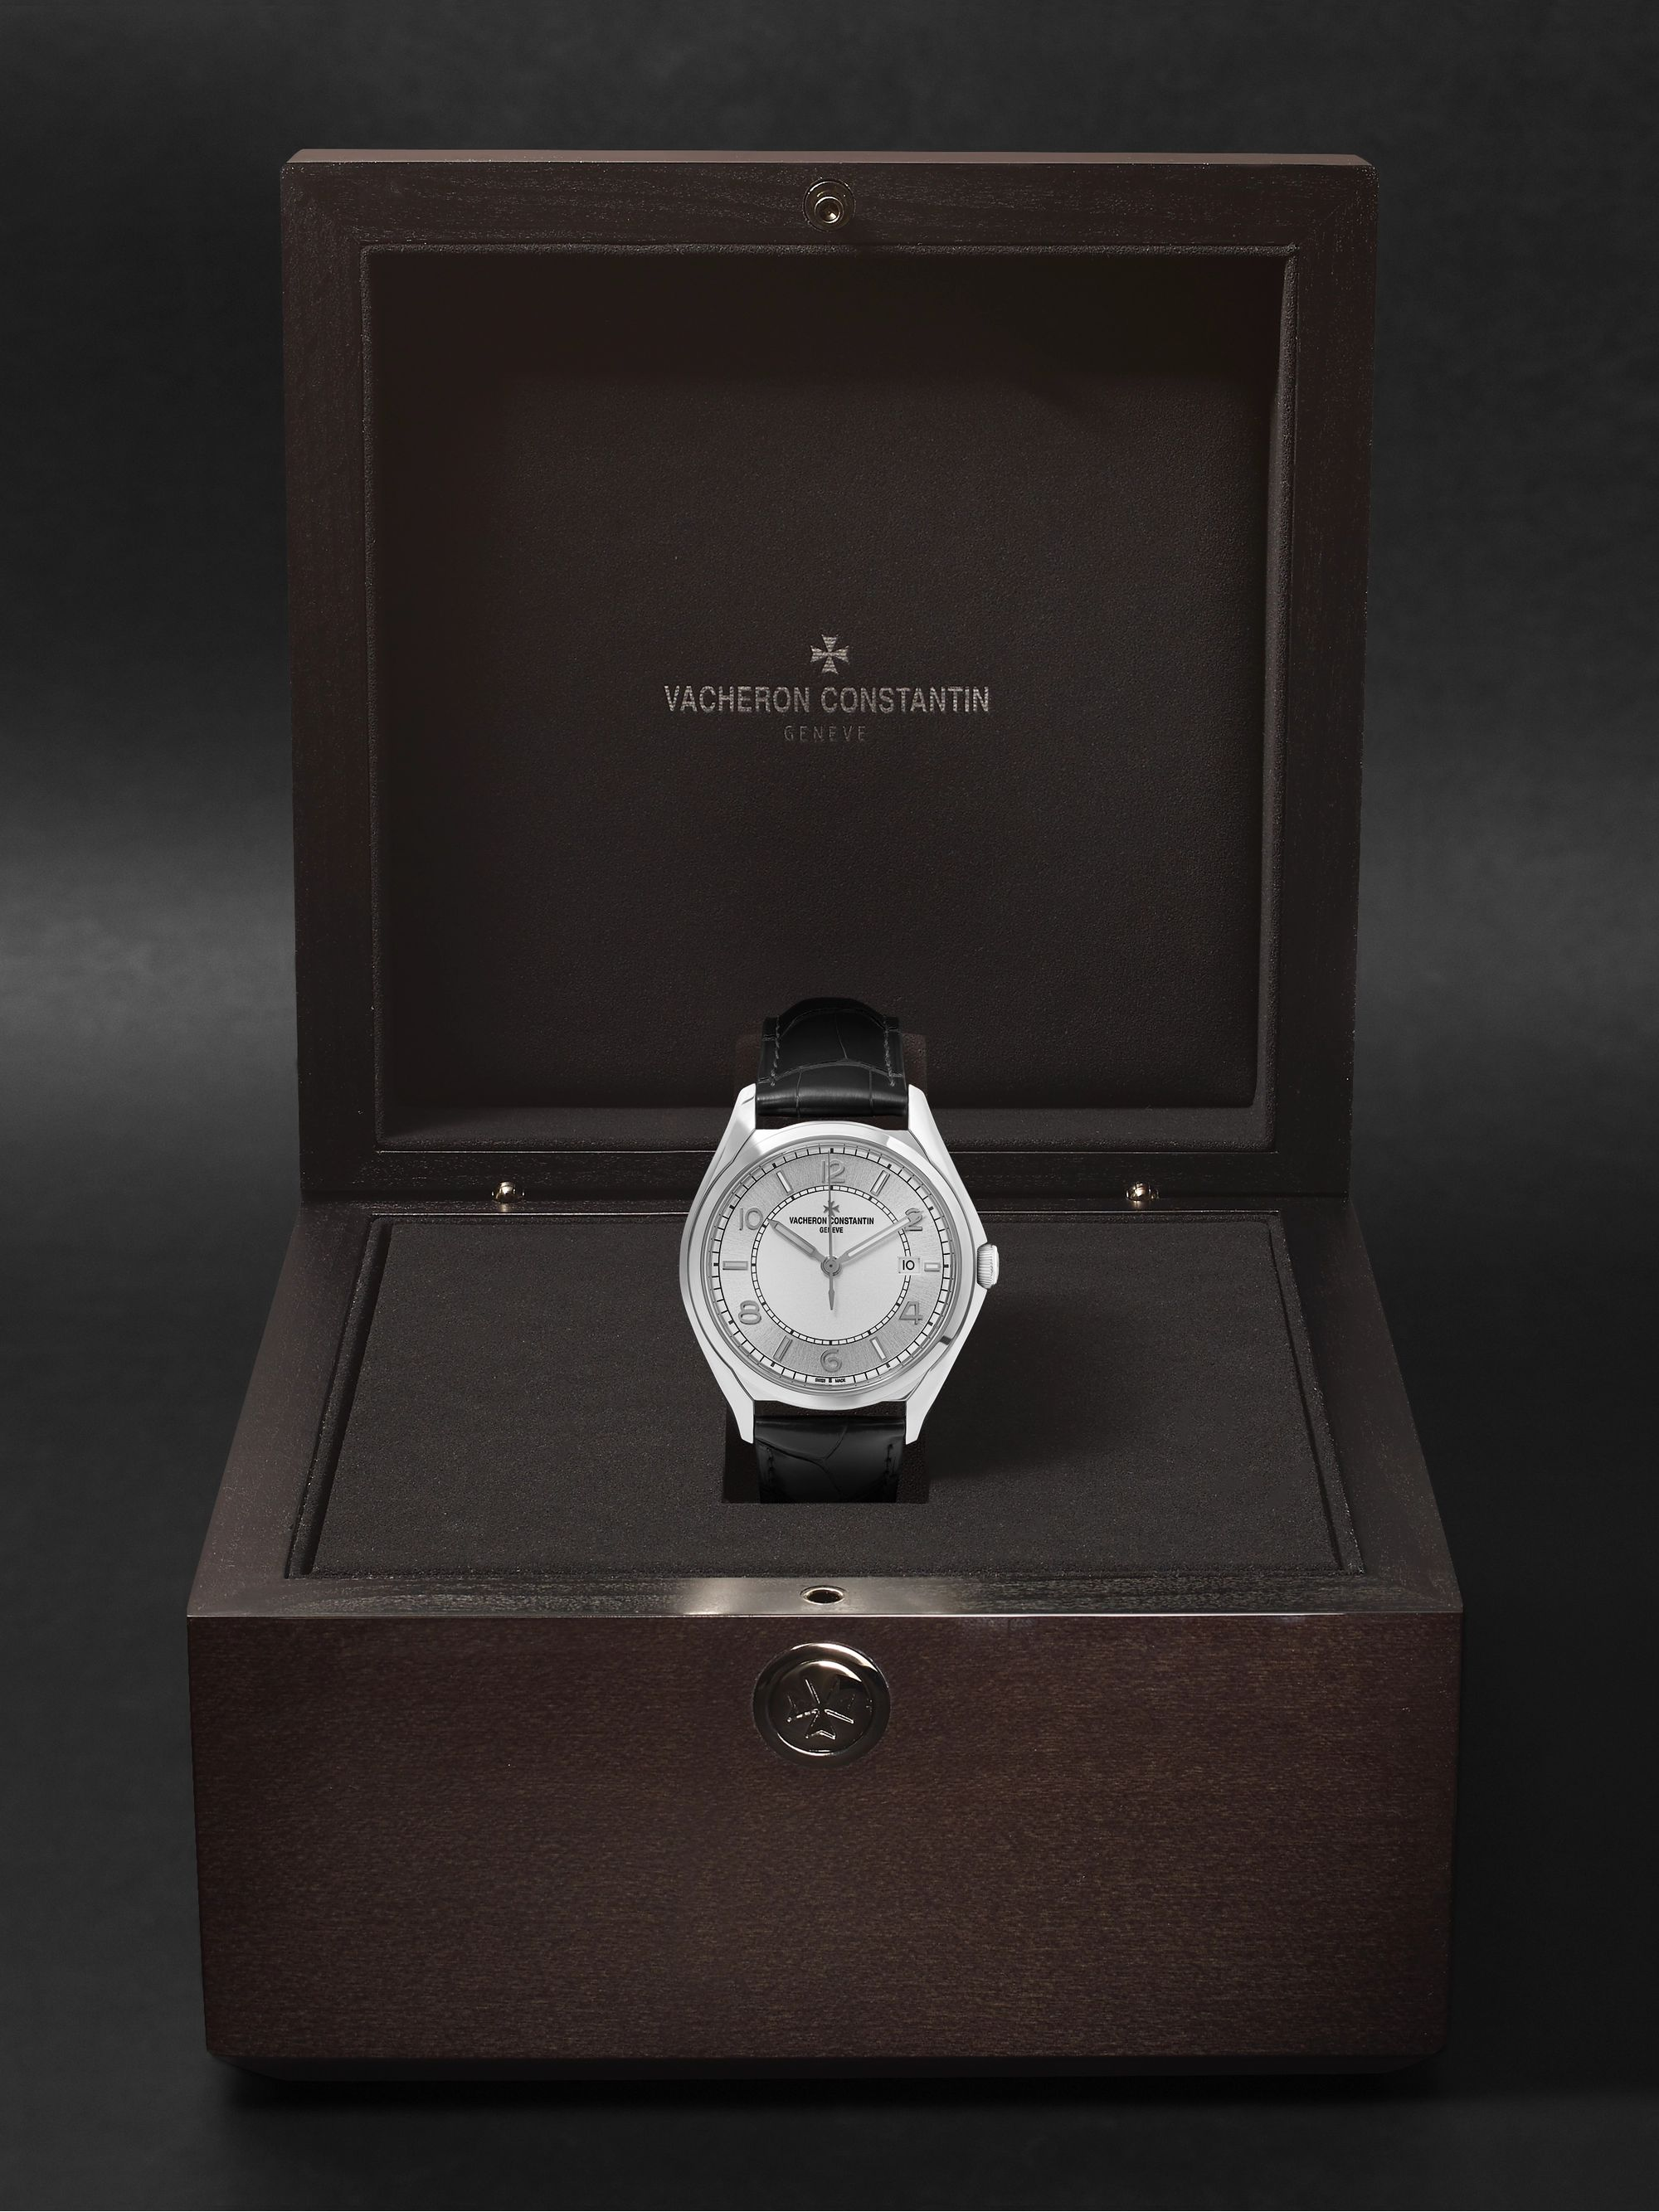 VACHERON CONSTANTIN Fiftysix Automatic 40mm Stainless Steel and Alligator Watch, Ref. No. 4600E/000A-B442